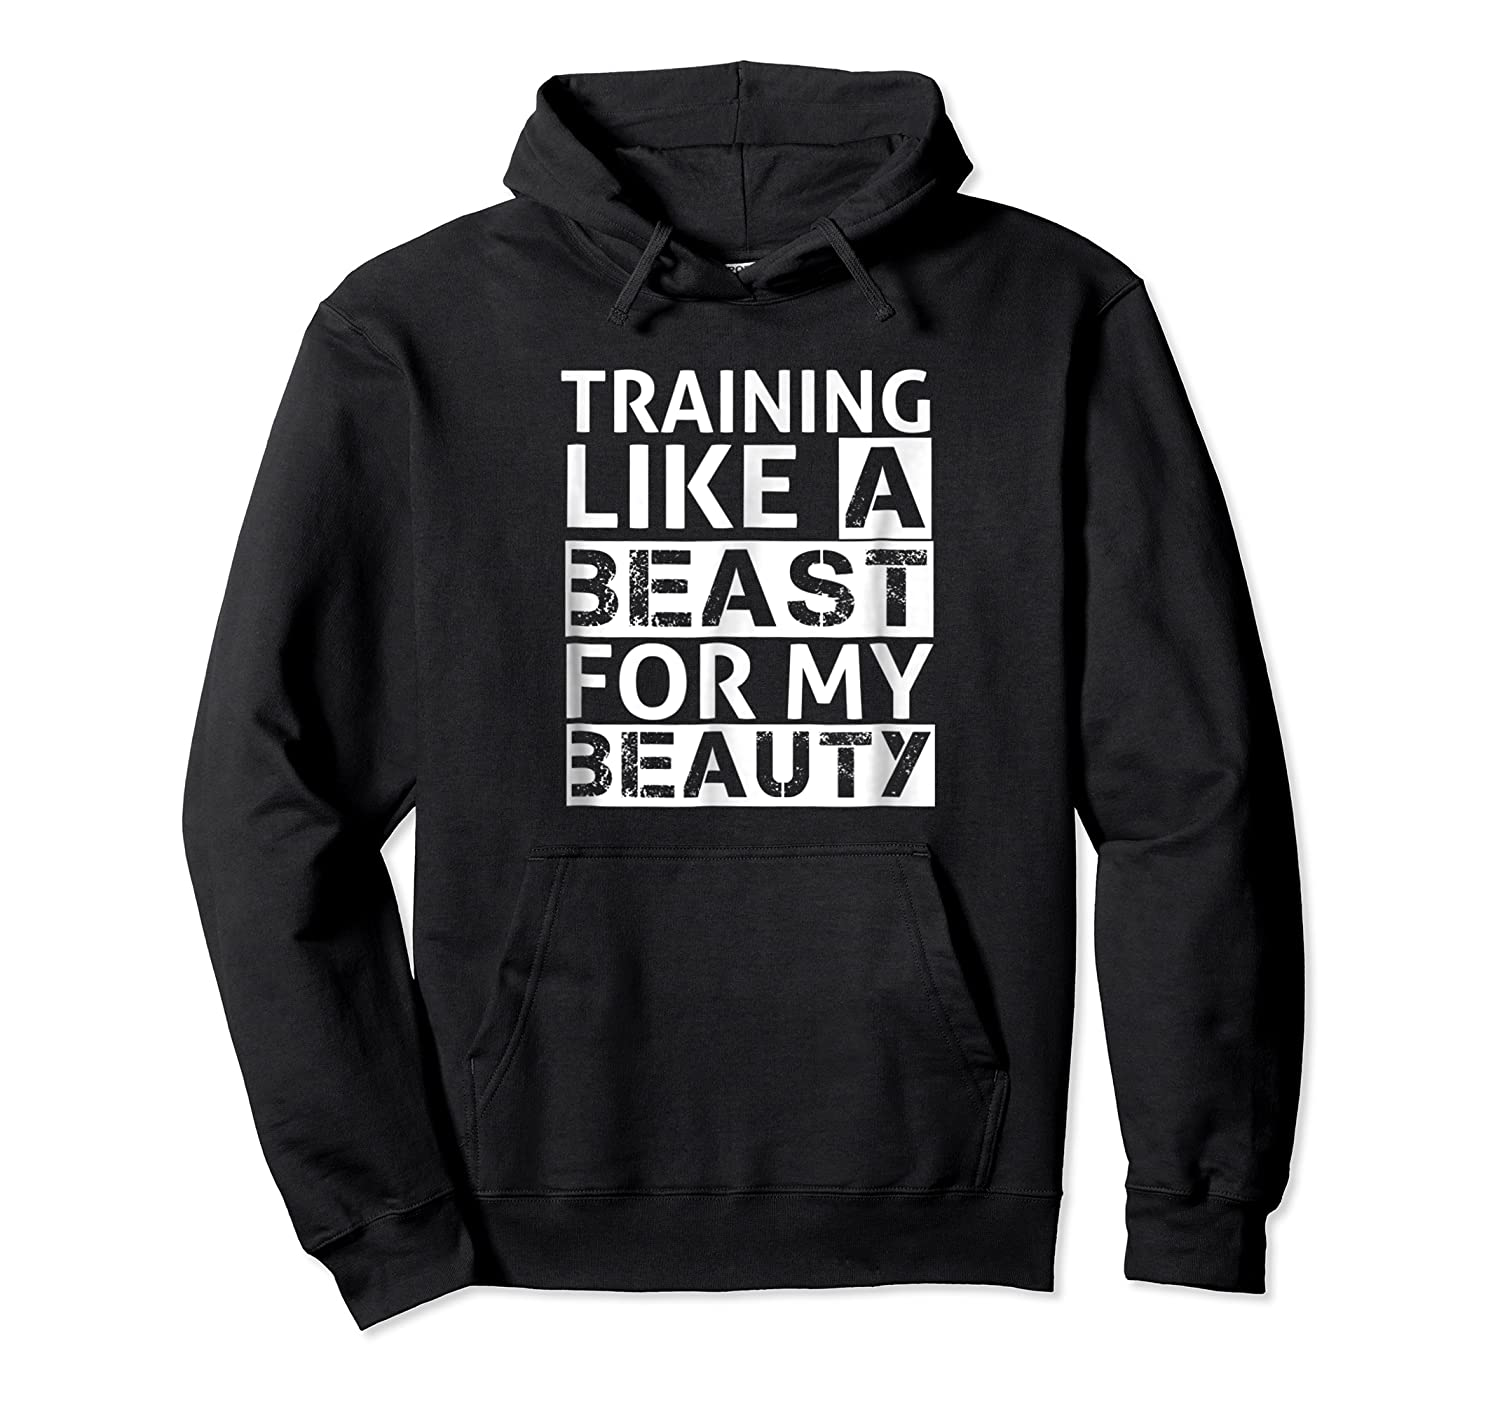 Training Like A Beast For My Beauty Couples Shirts Unisex Pullover Hoodie